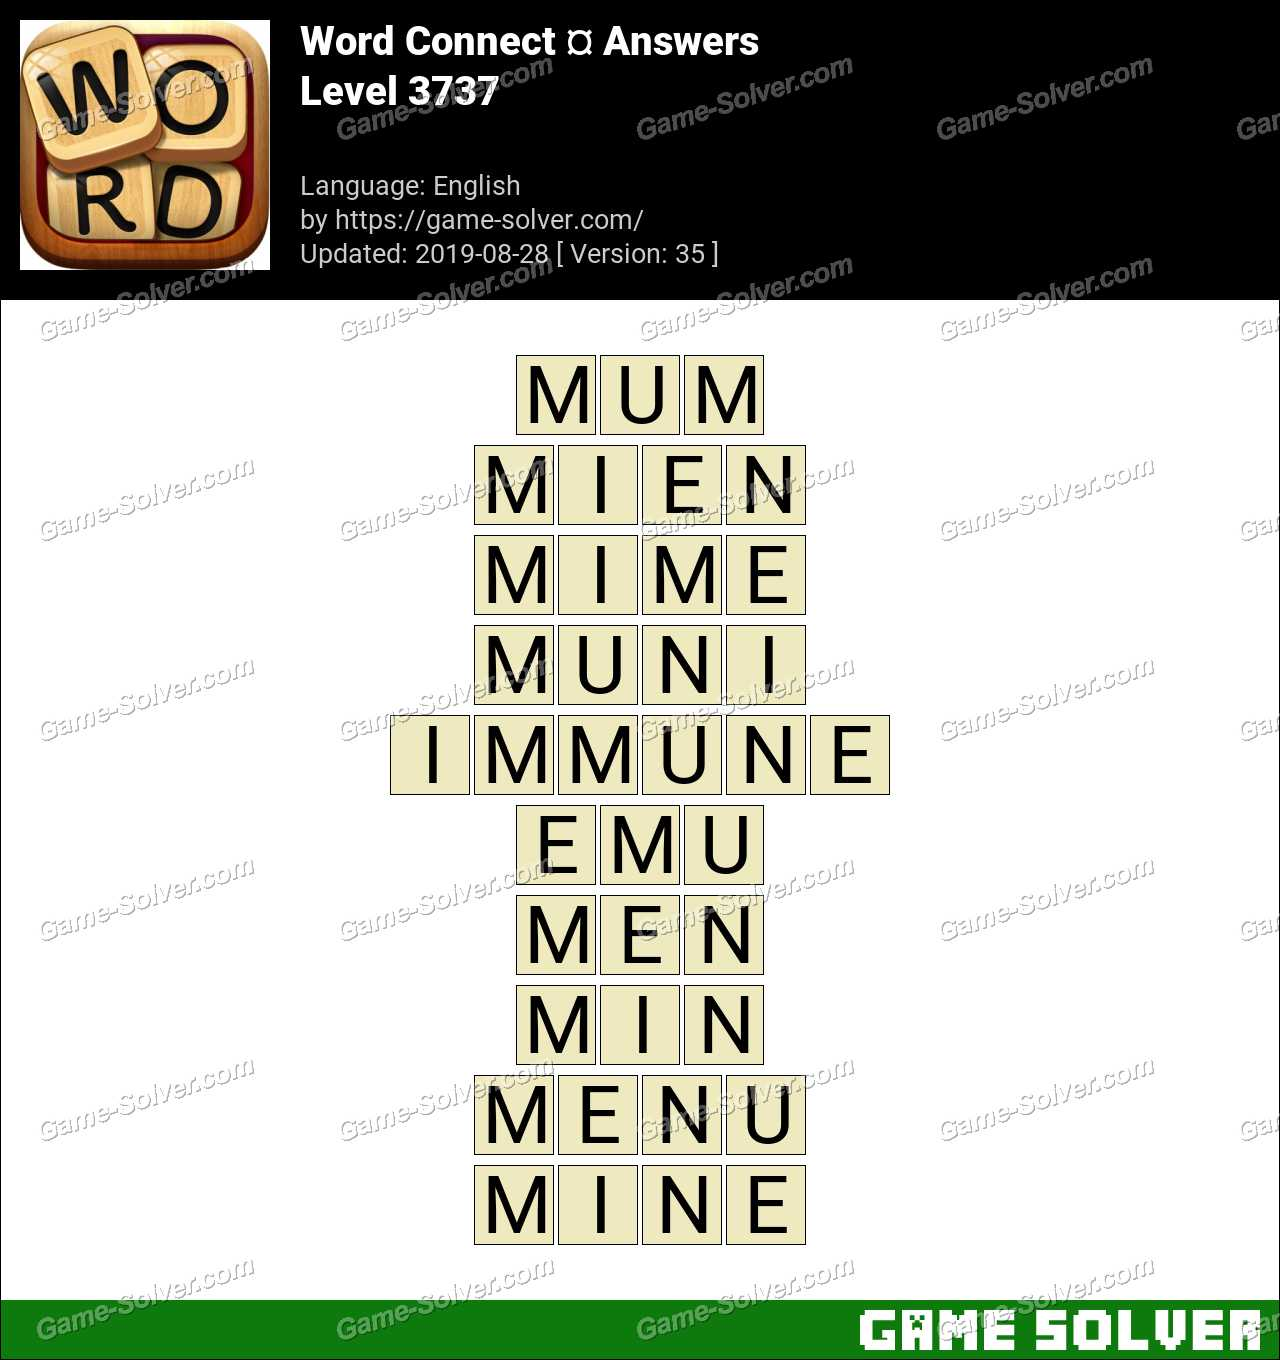 Word Connect Level 3737 Answers